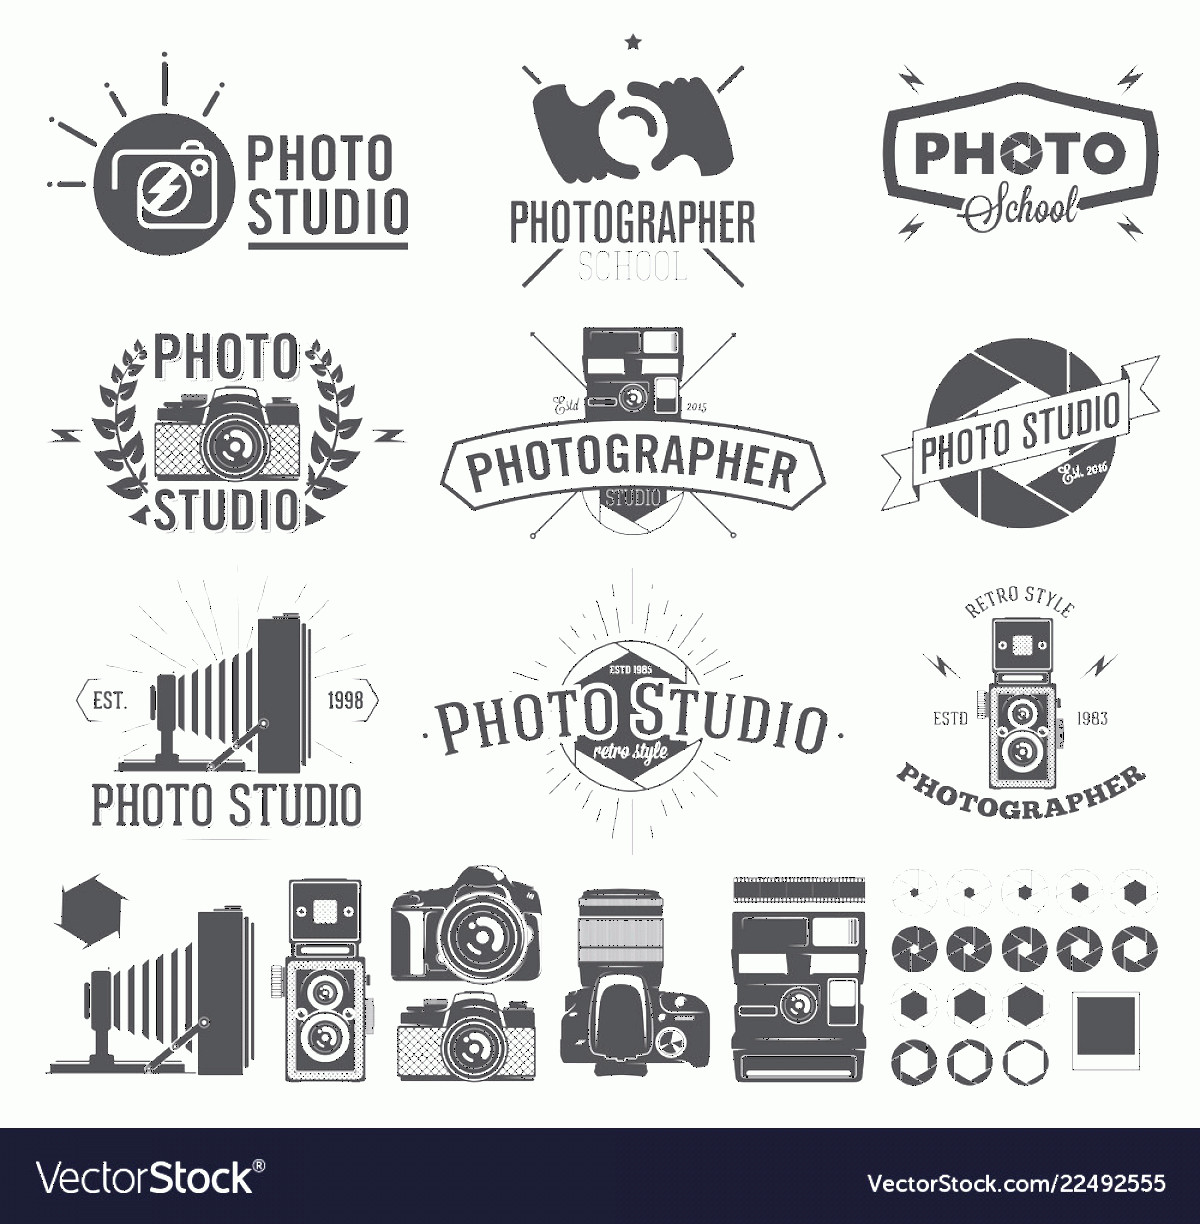 Classic Camera Vector: Photography And Photo Studio Logo Classic Camera Vector